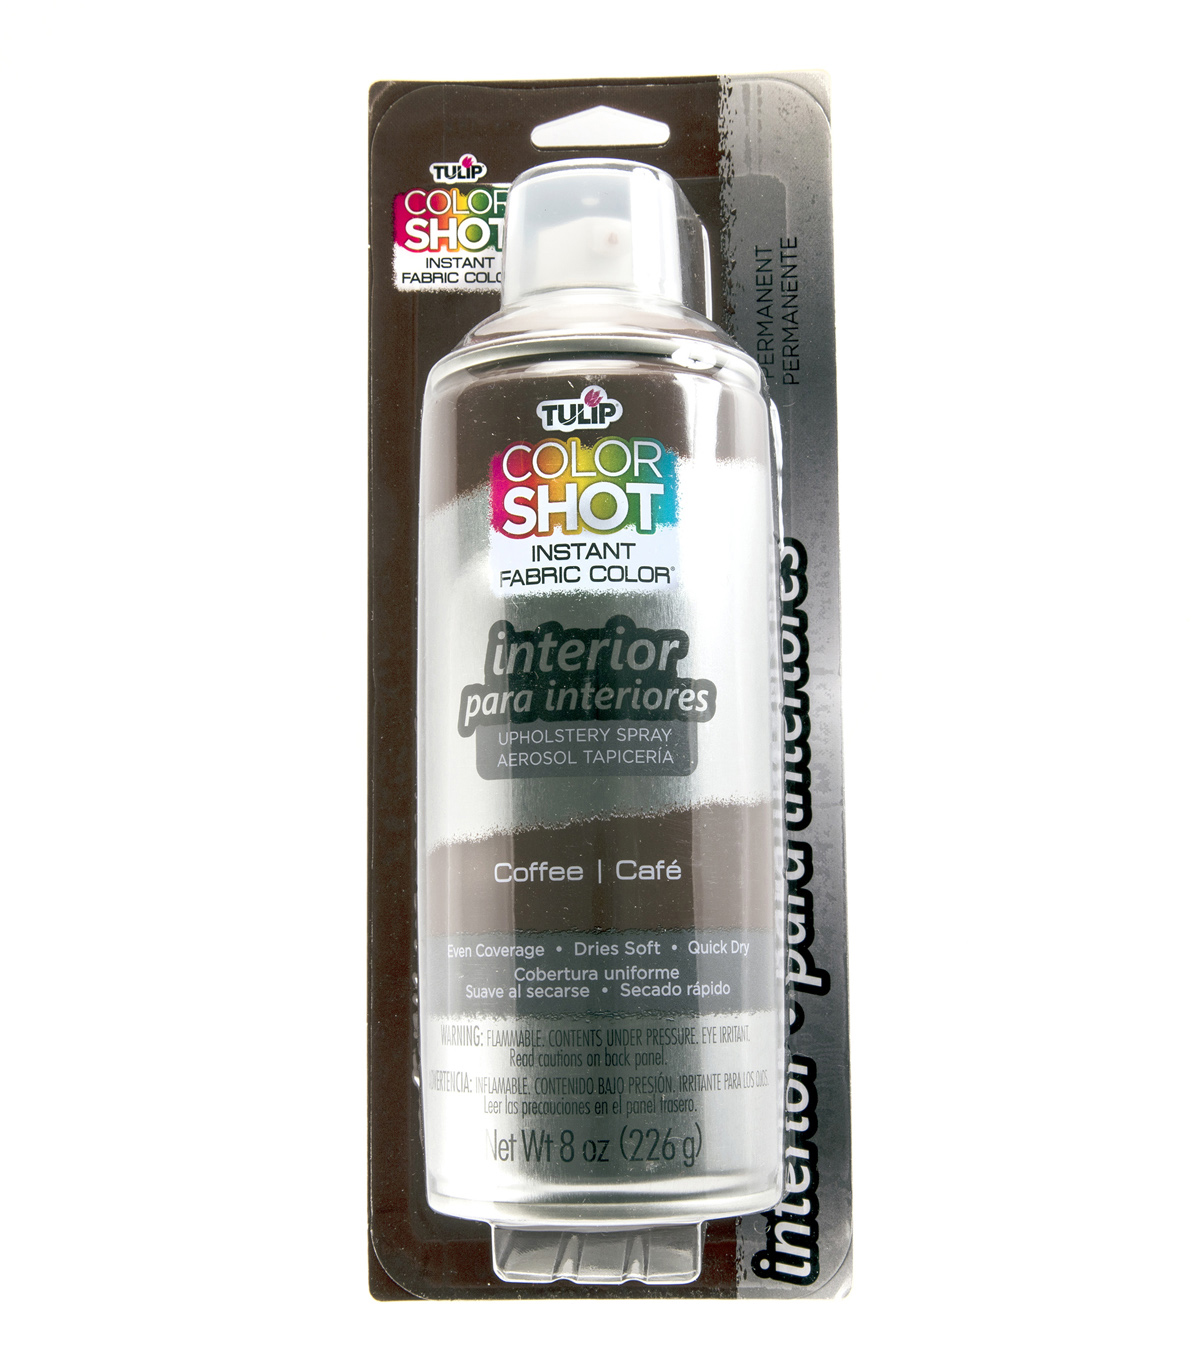 Tulip ColorShot 8oz Indoor Upholstery Spray, Coffee